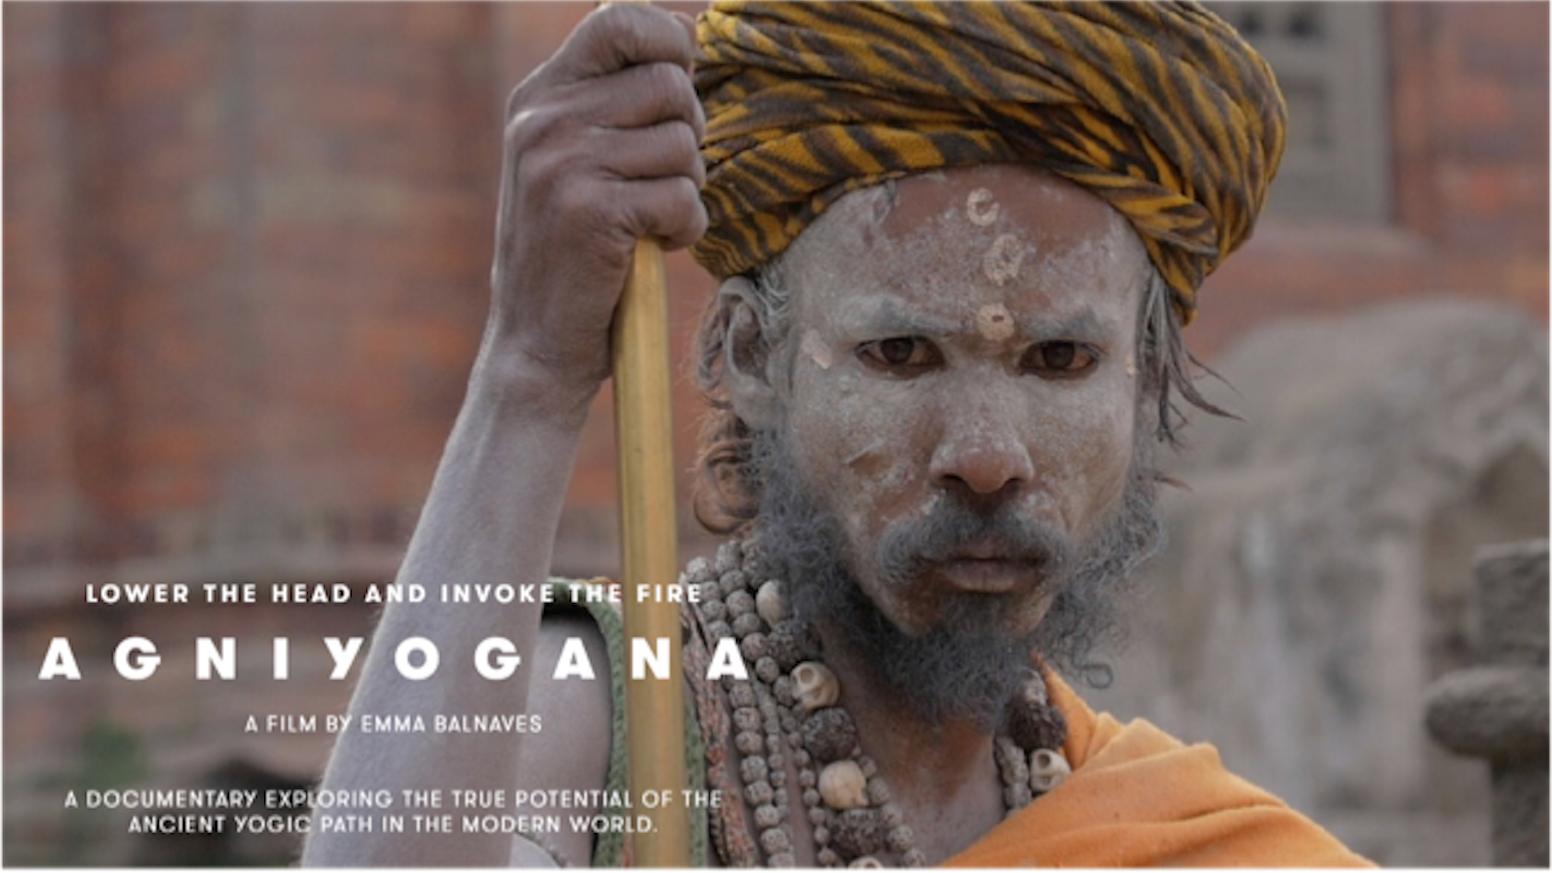 A film exploring the true potential of the ancient yogic path in the modern world